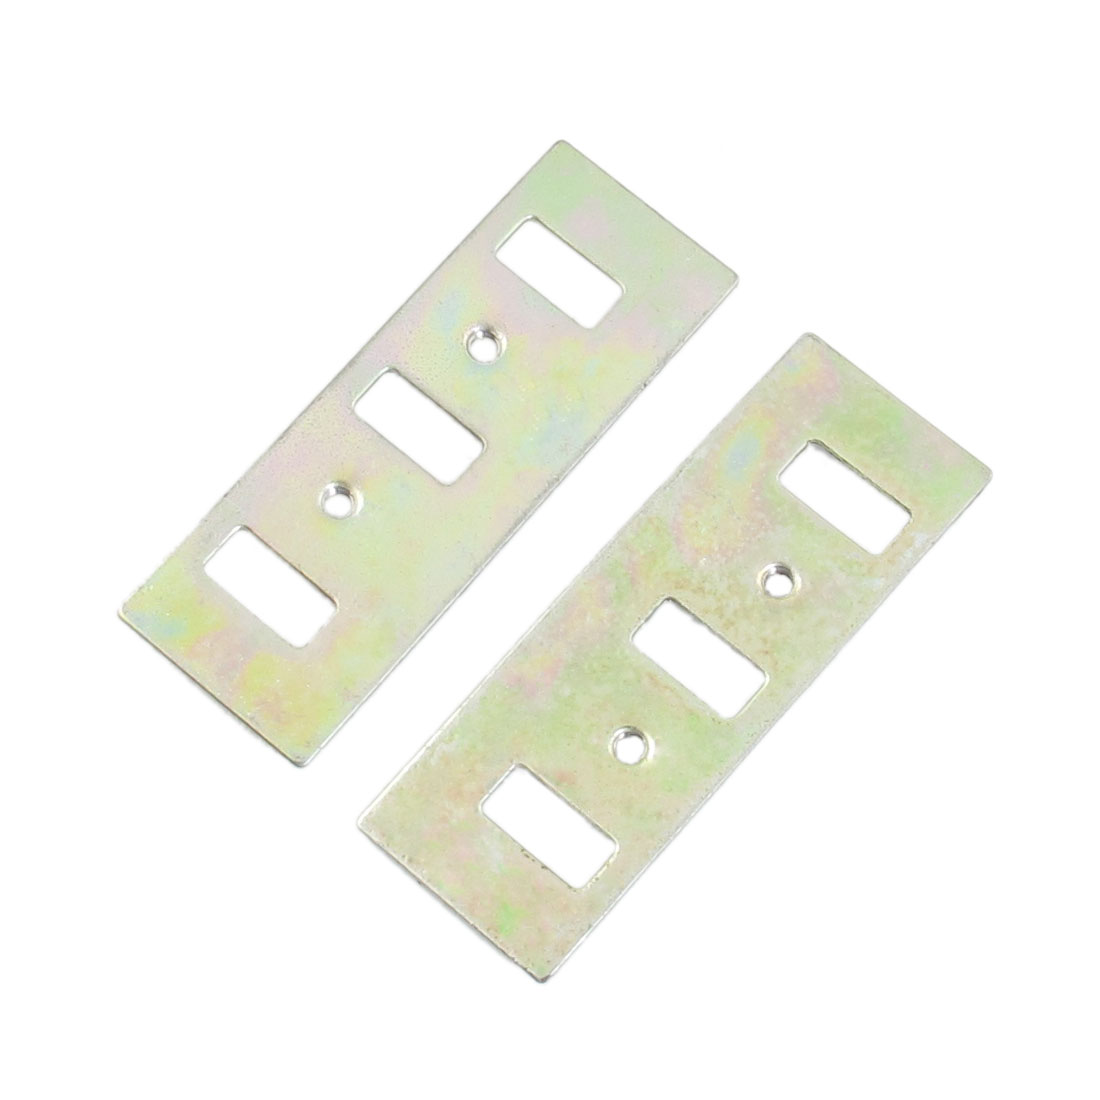 "2 Pcs Sharp Metal Electric Planer Blades 3 1/10"" for Makita F20"